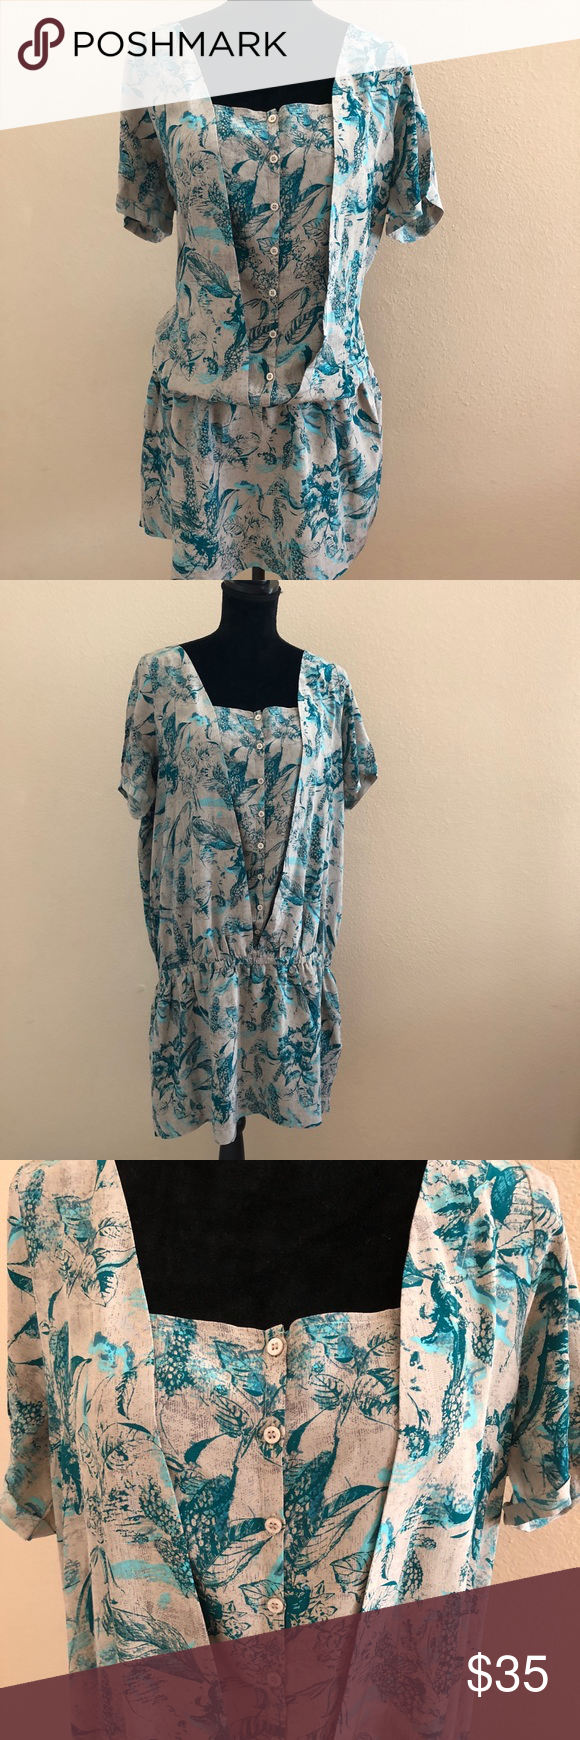 La Redoute Dress Size 18 Silk Grey Teal Floral Excellent Summer Dress Made Of Silk Skirt Part Has Thin Layer Of Polyester Lining Size 18 Dress Dresses Silk [ 1740 x 580 Pixel ]